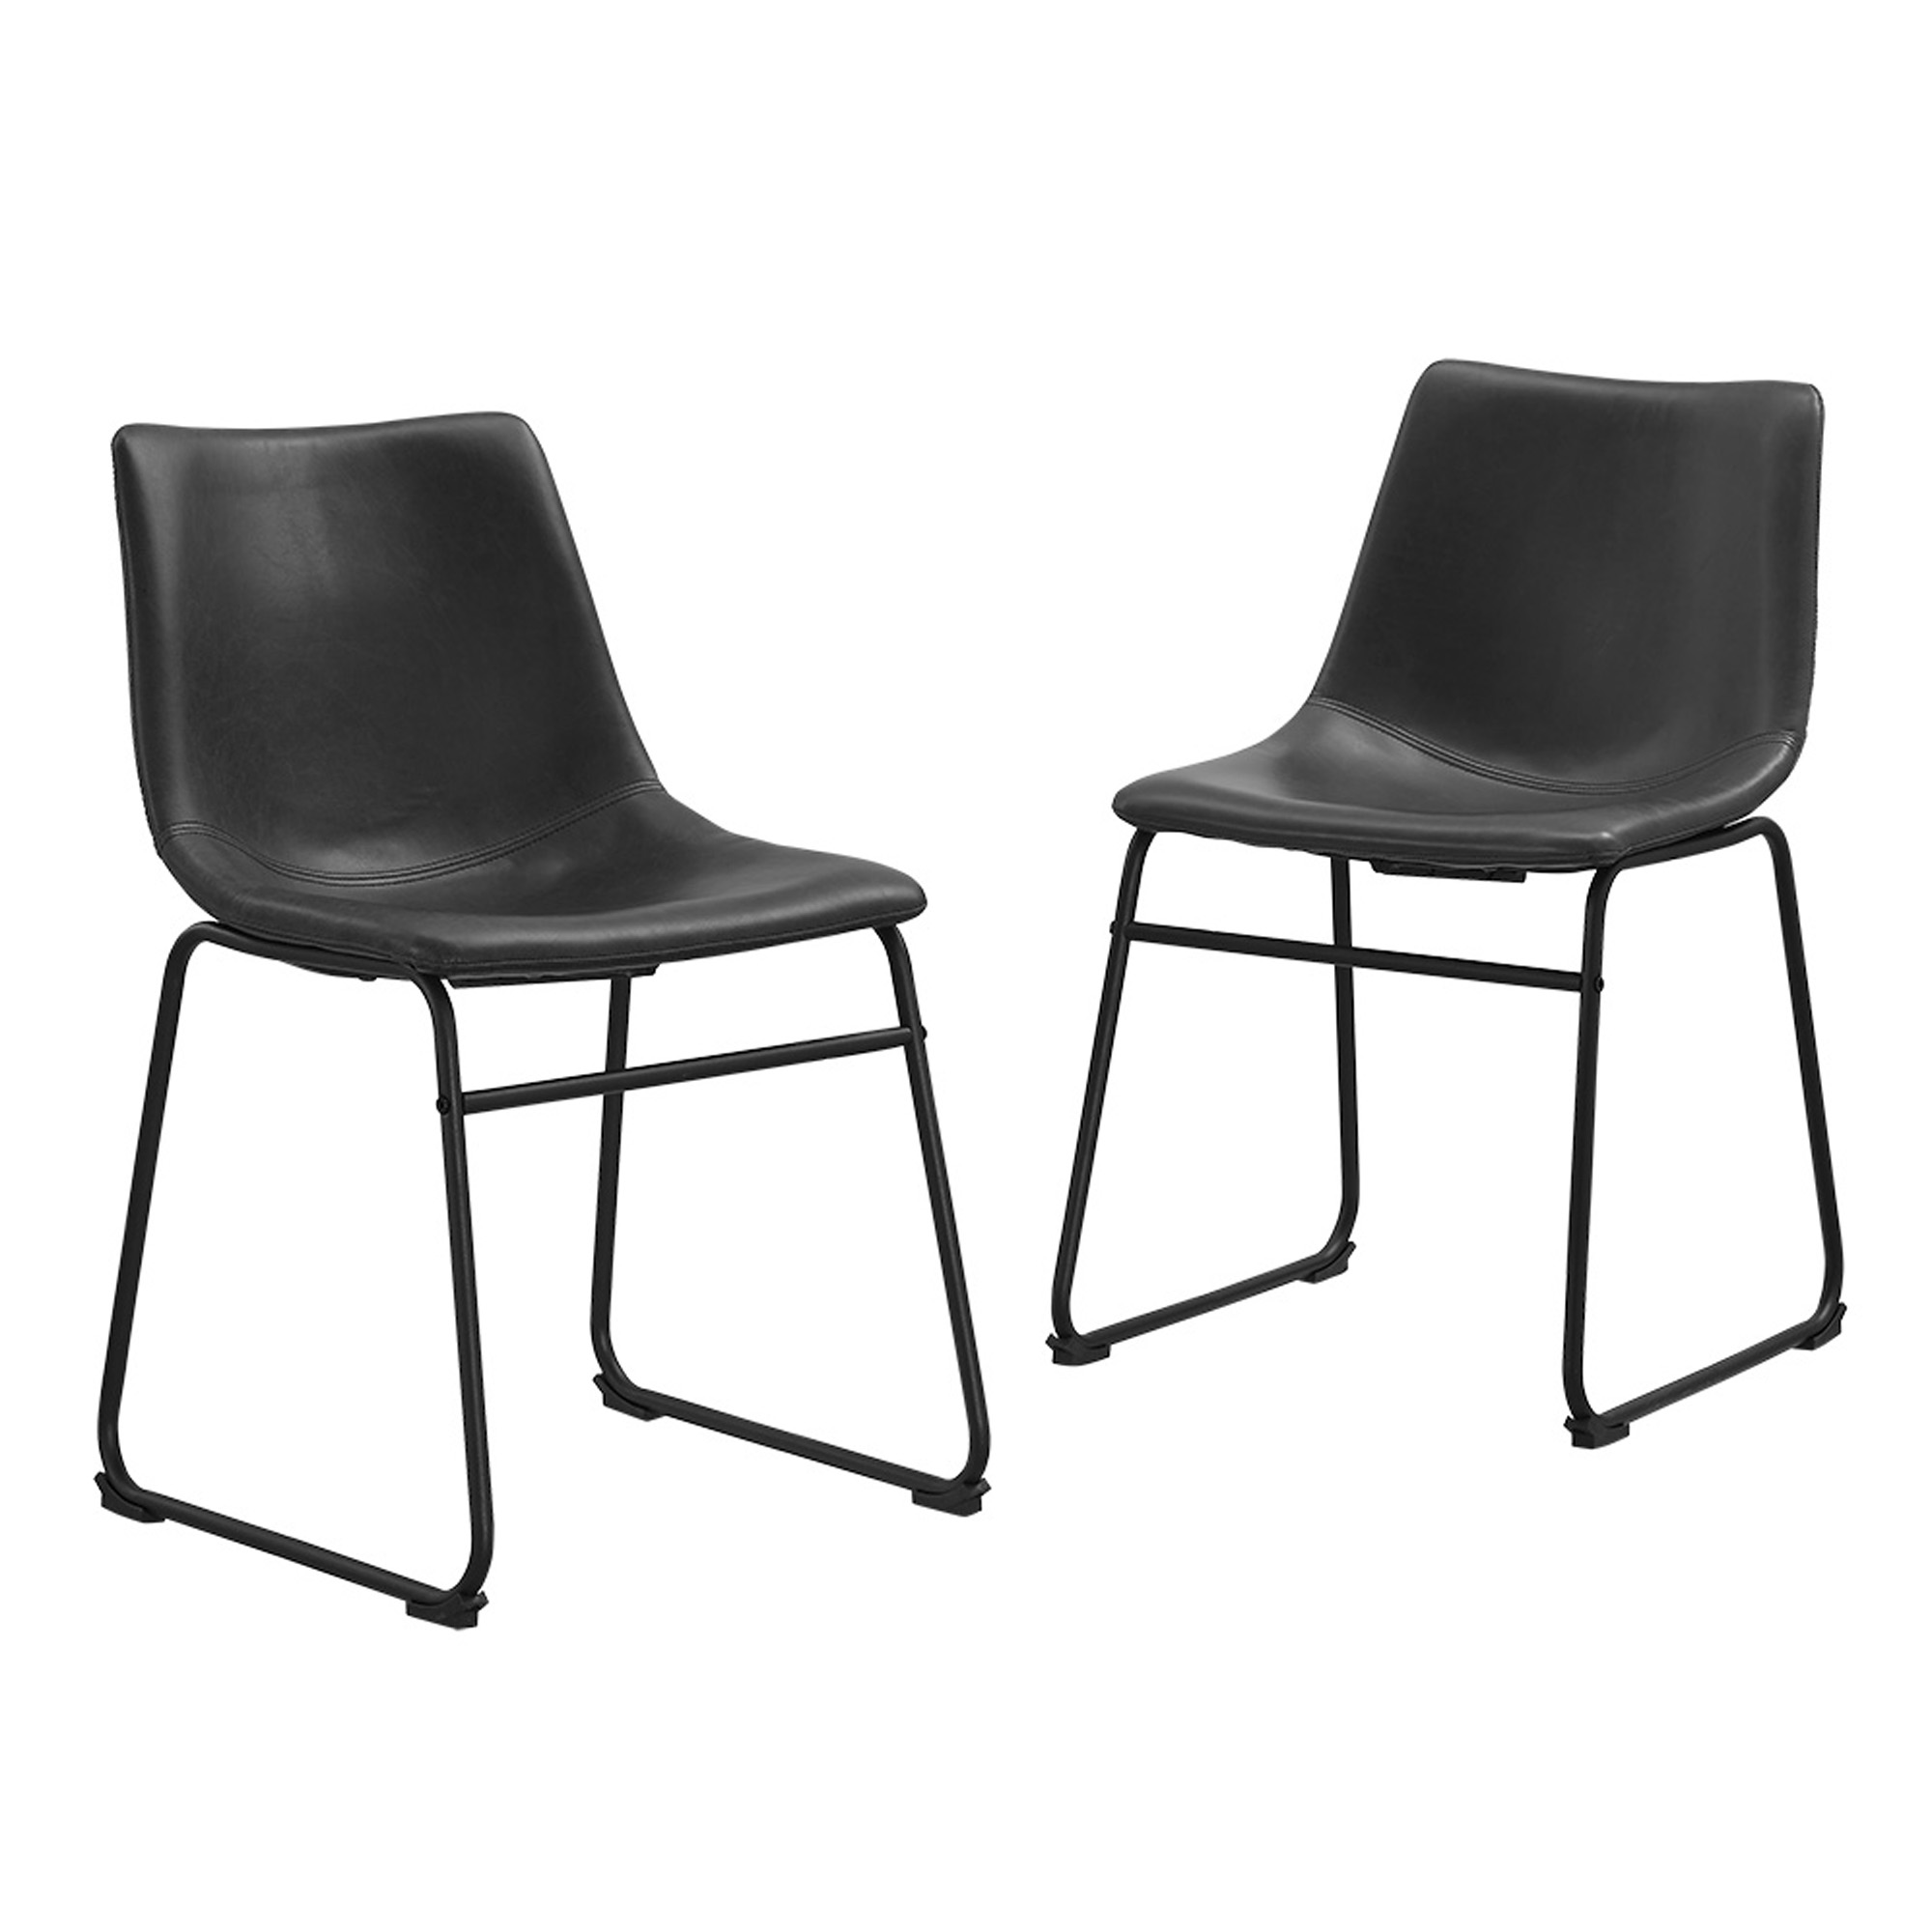 black leather dining room chairs | Black Faux Leather Dining Chairs - Set of 2 814055025495 ...